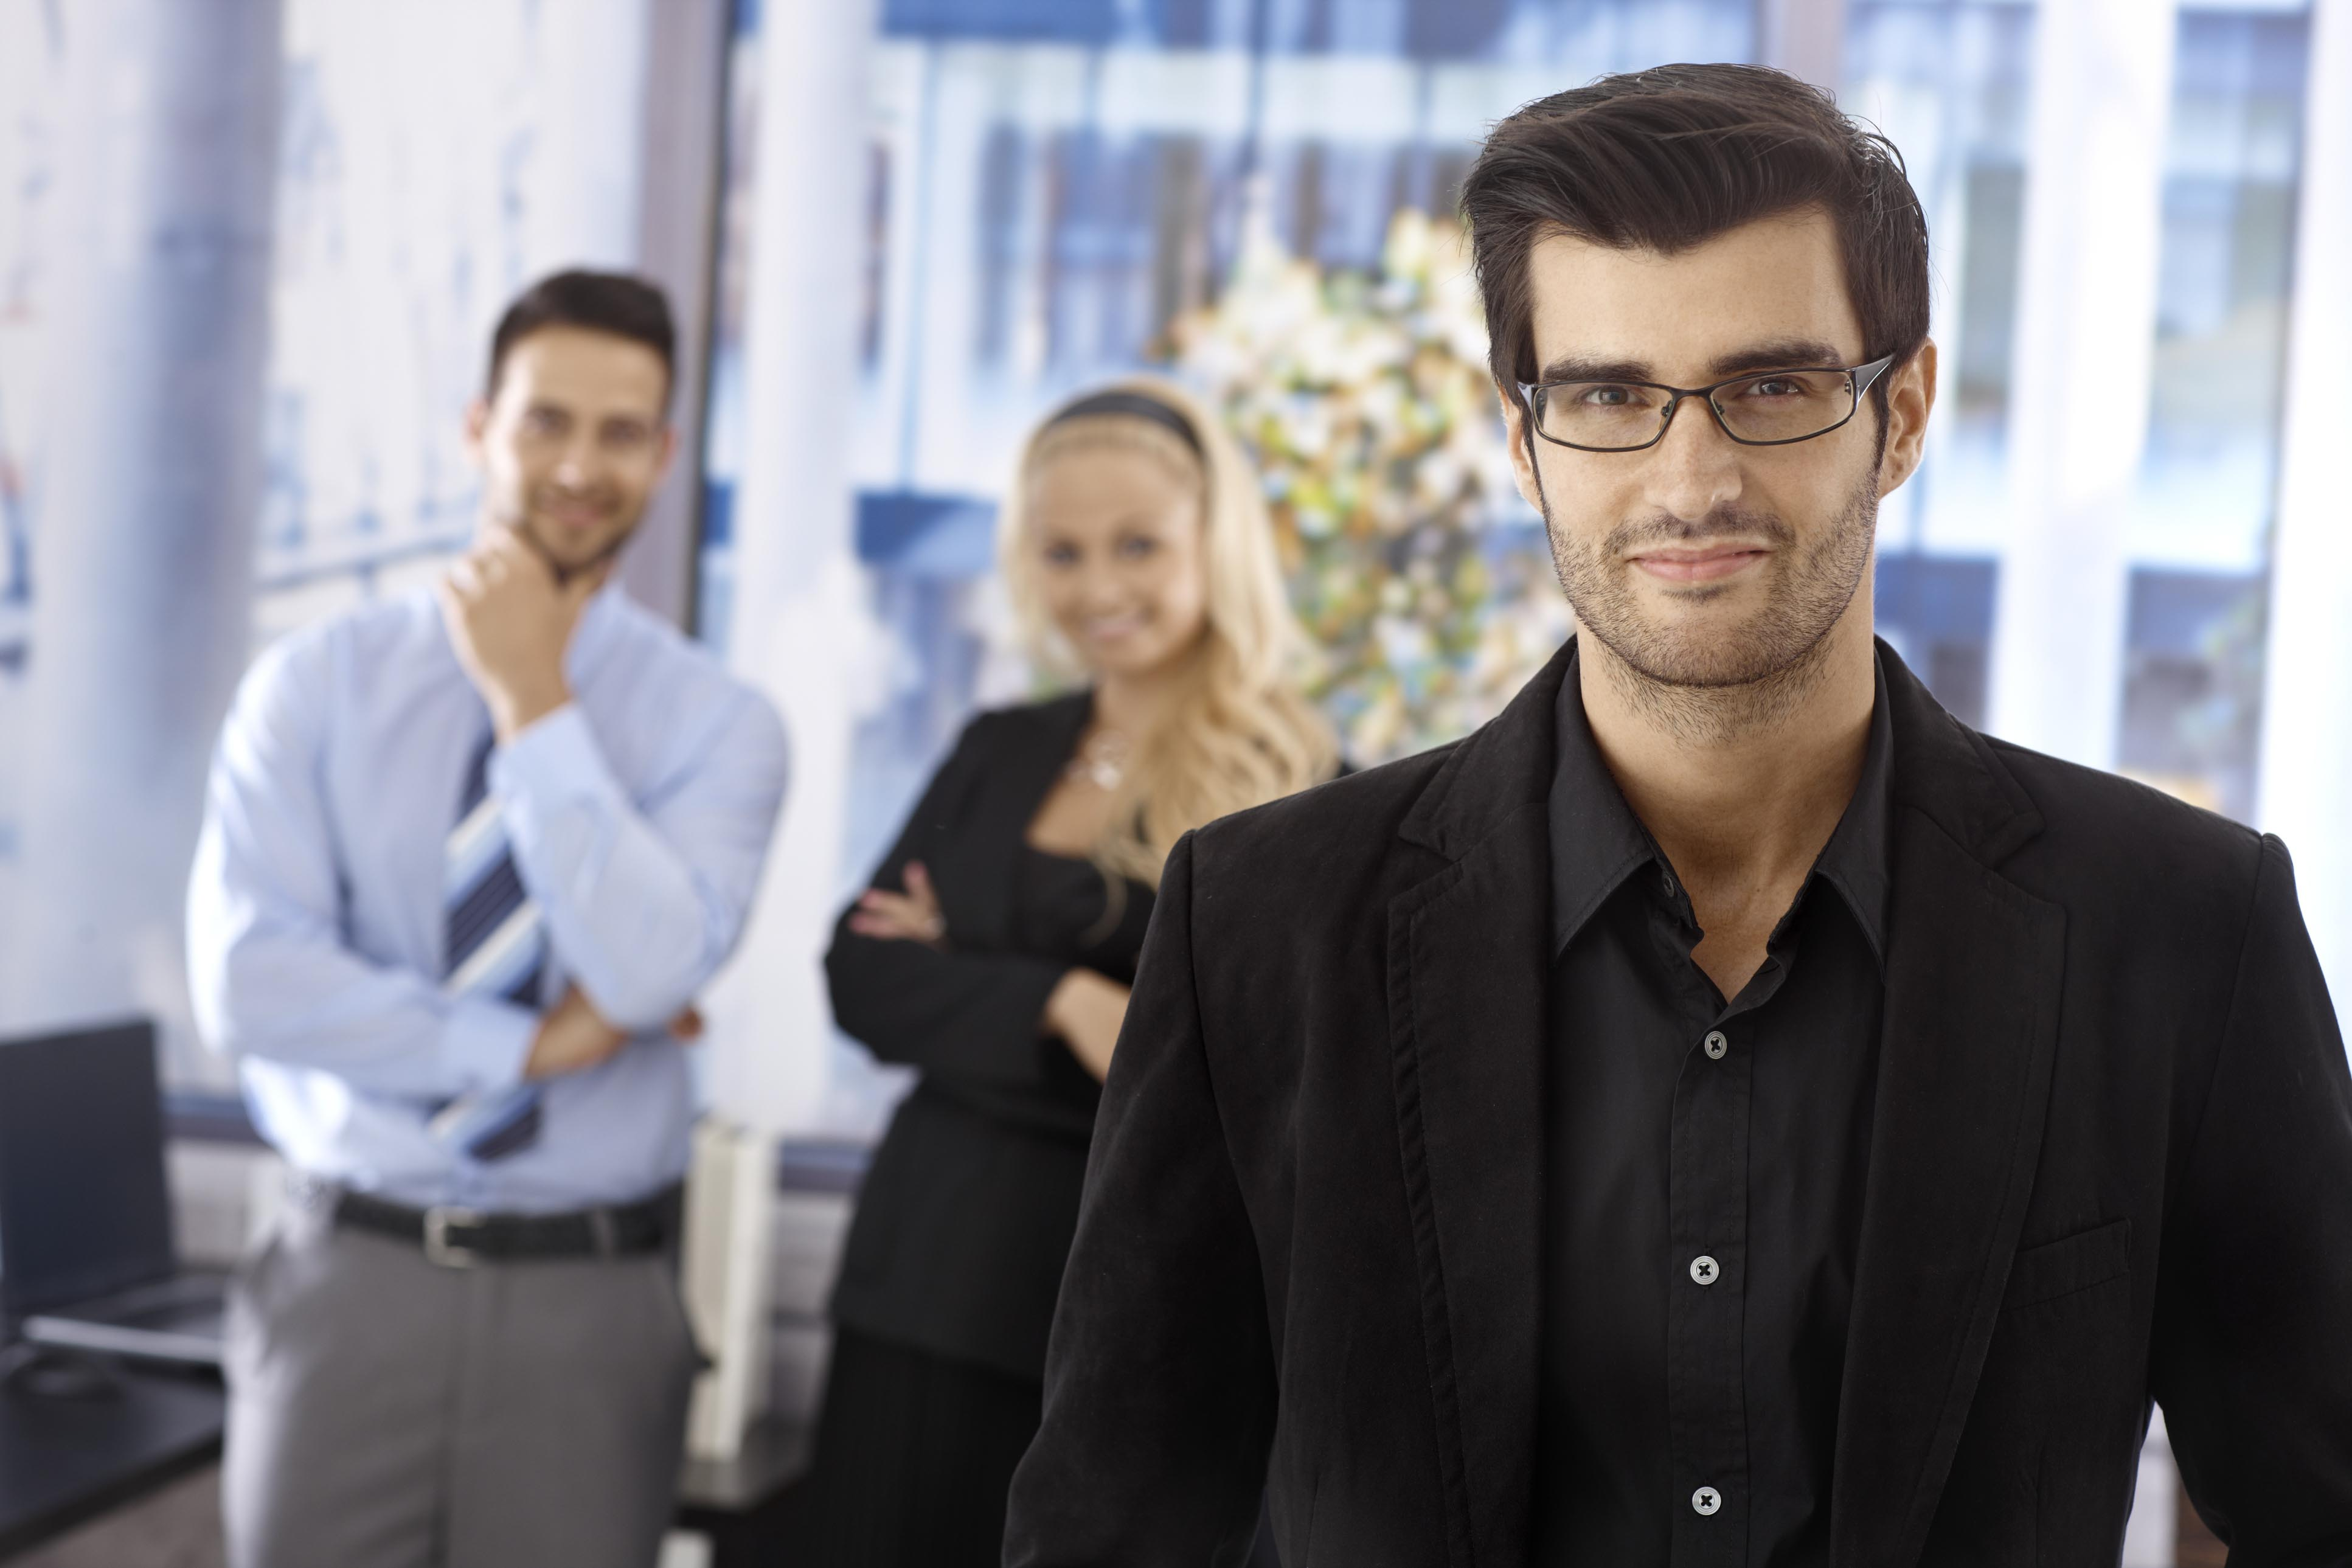 A man with glasses and two collegues in background thinking about how they can develop or train their employees.